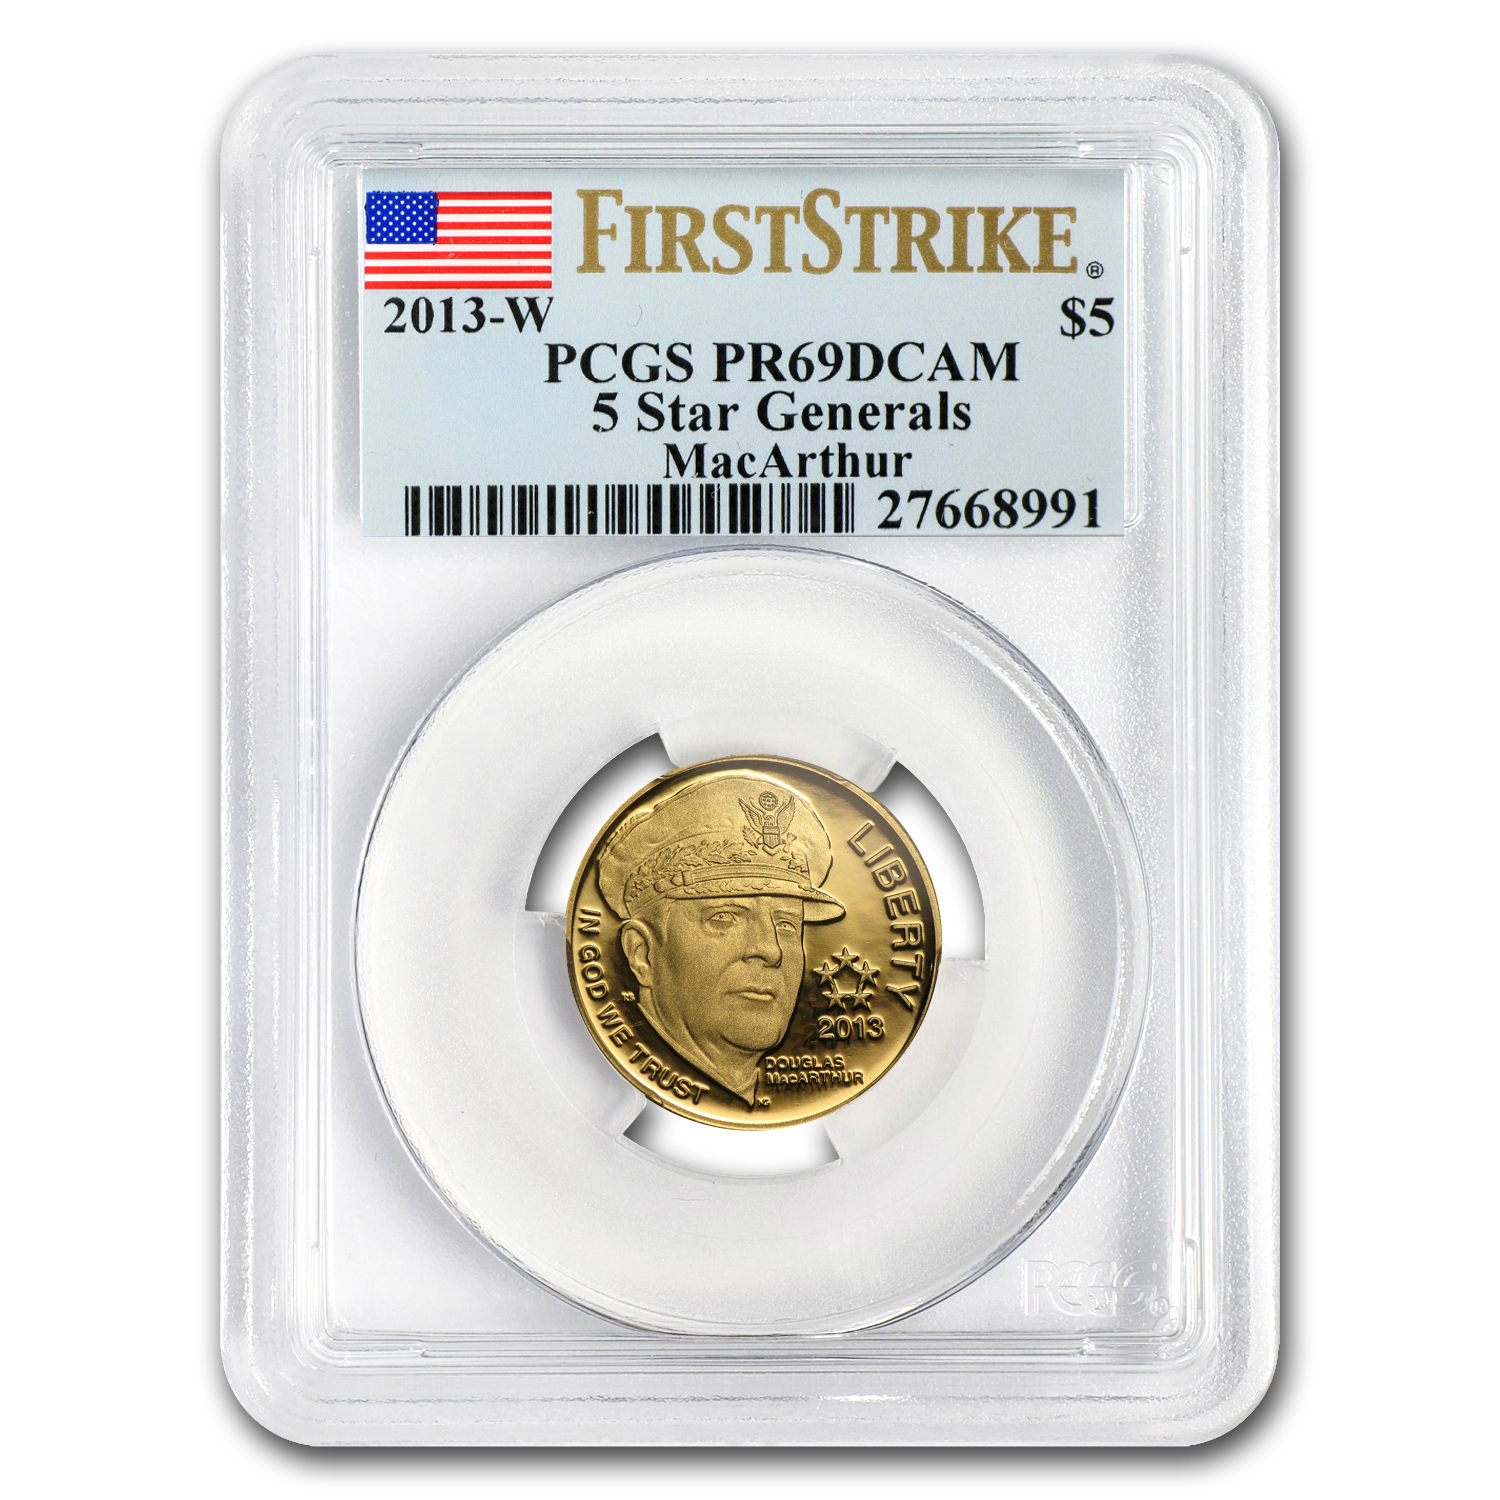 2013-W $5 Gold Commem Five Star General PR-69 PCGS (FS)